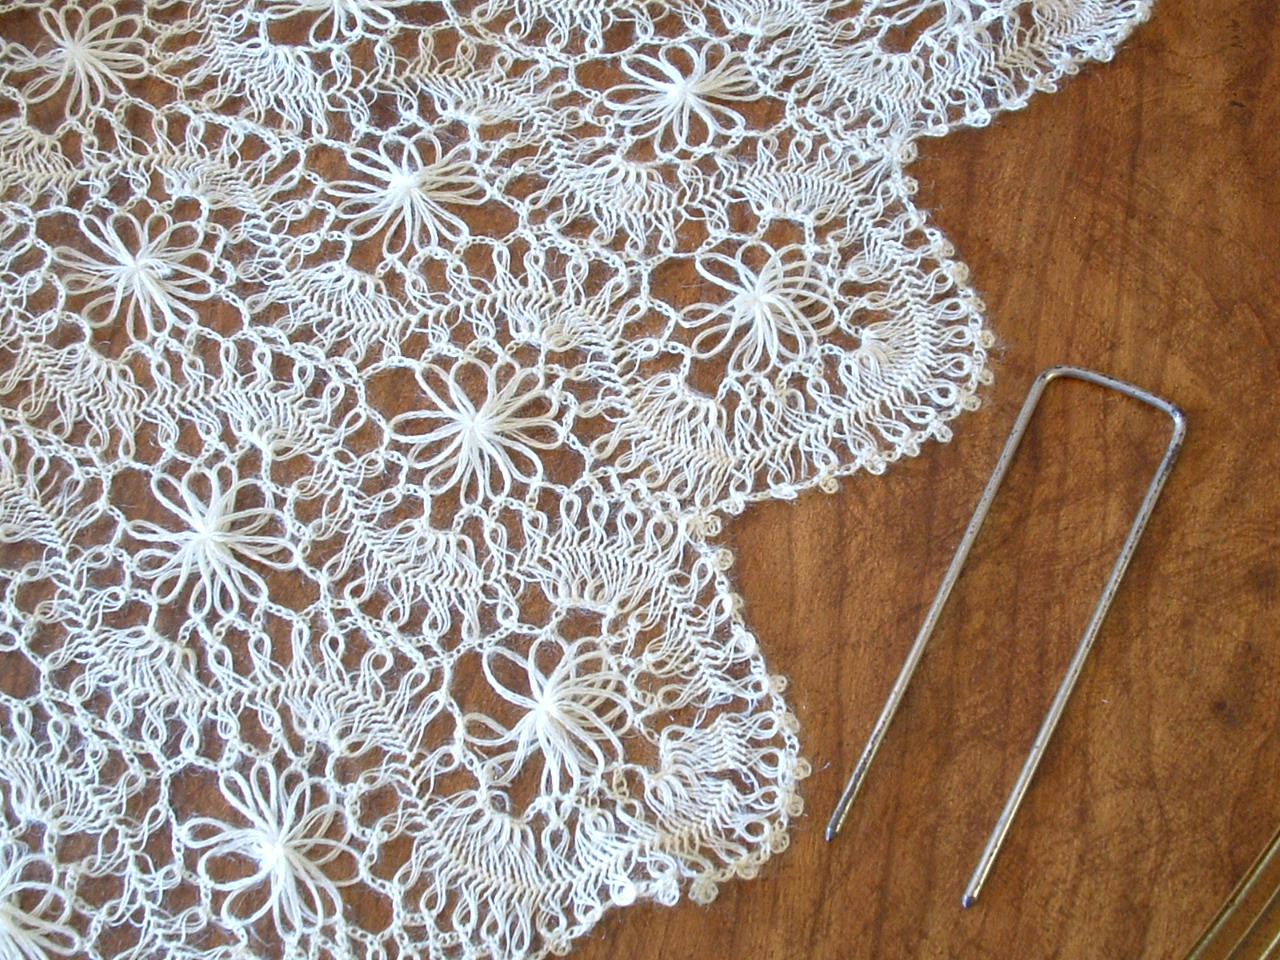 Awesome 1000 Images About Horquillas Maravillosas On Pinterest Laces Crochet Of Beautiful 47 Images Laces Crochet